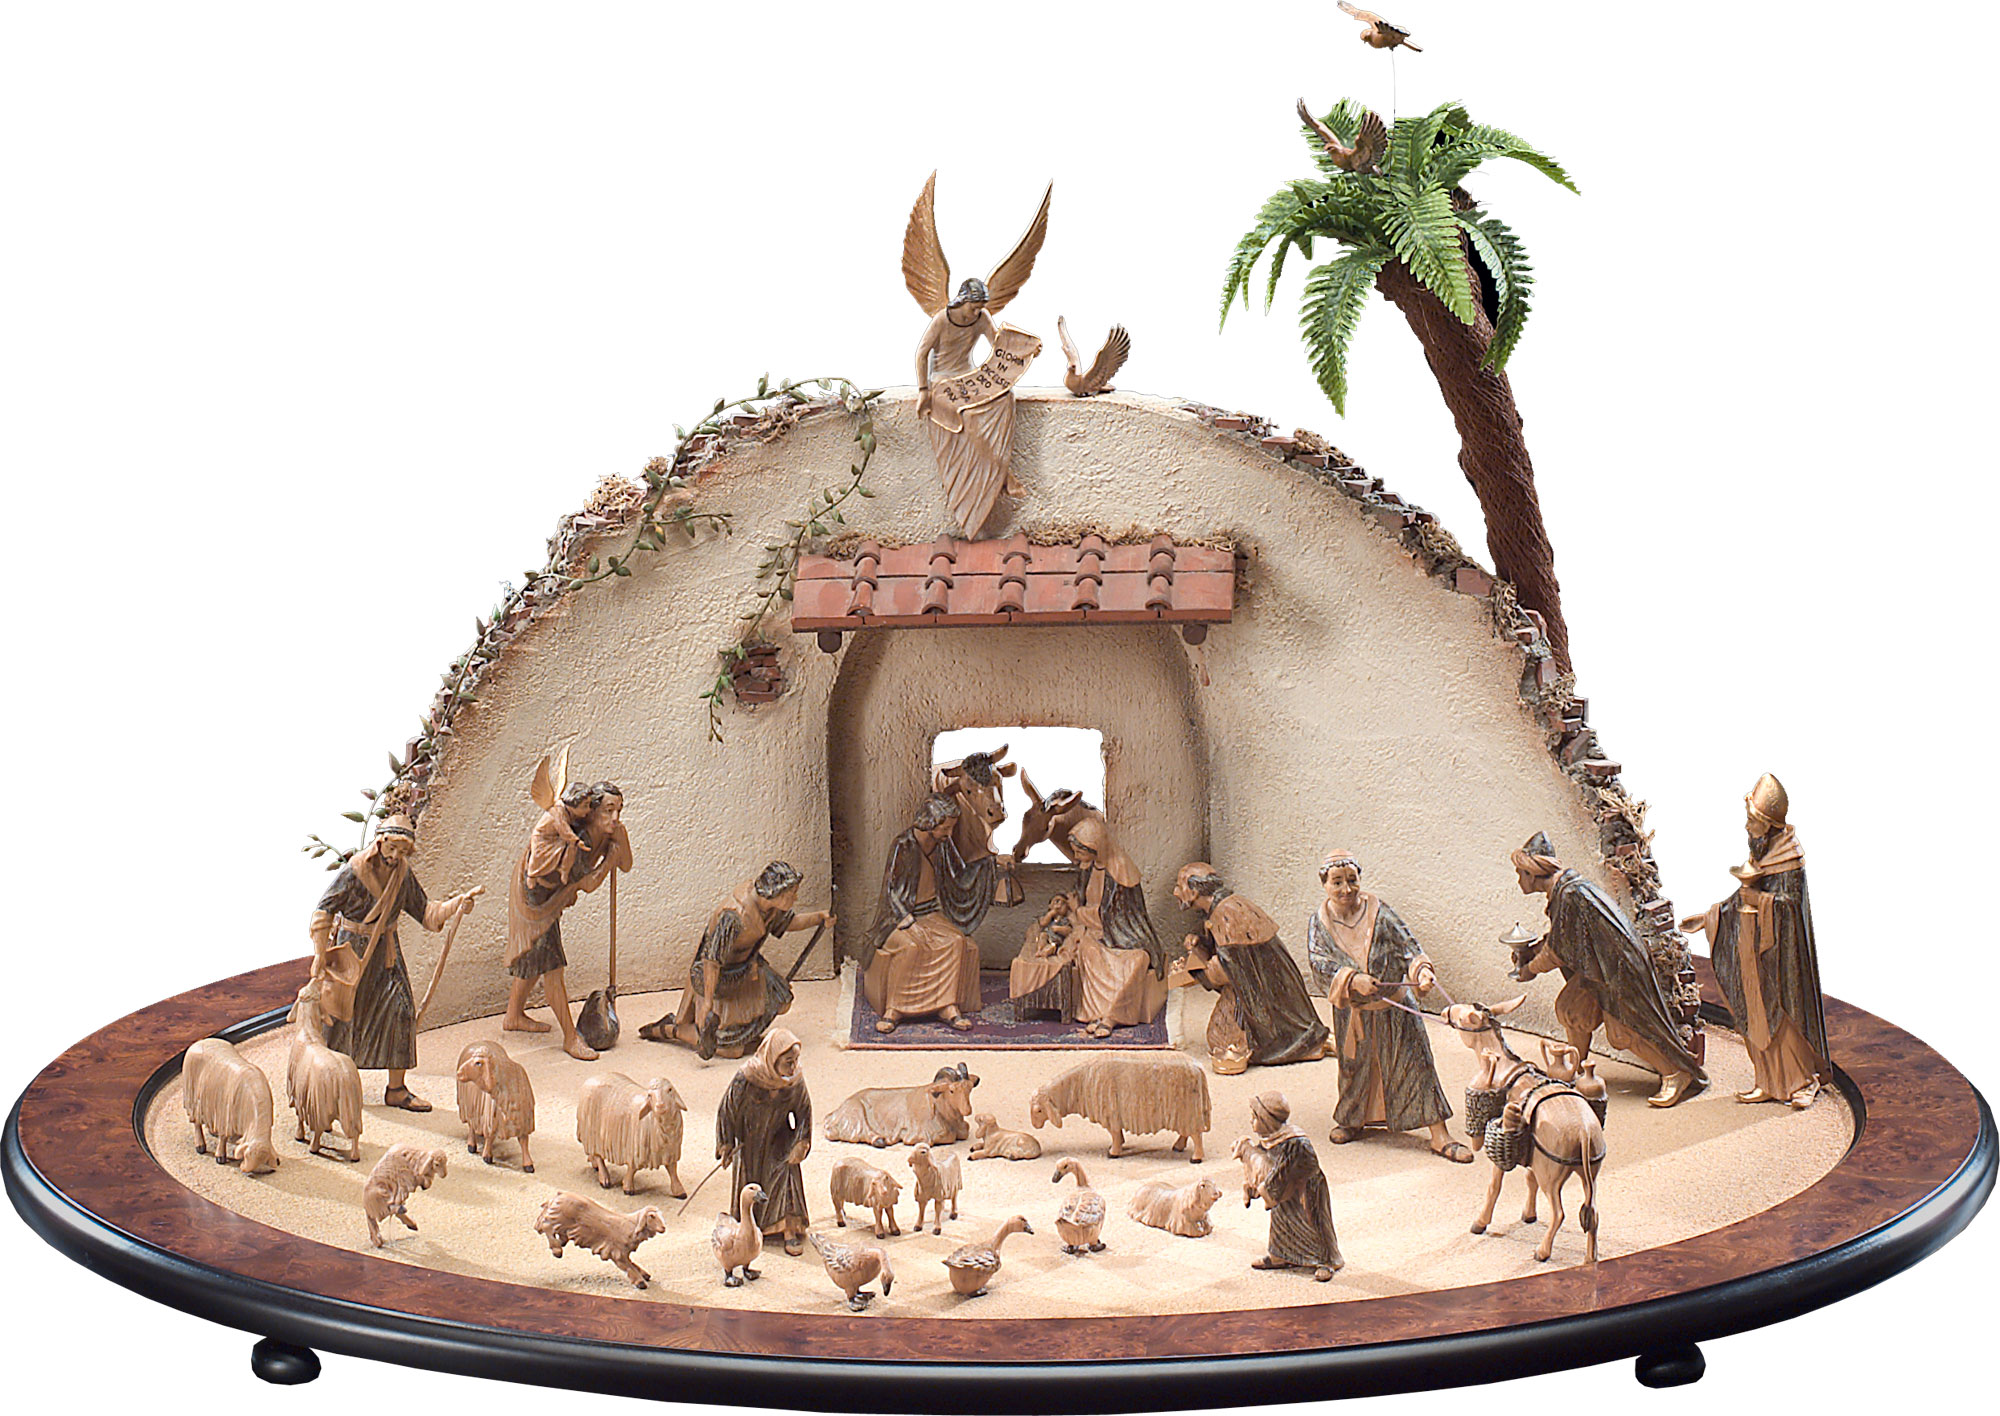 Chic Nativity Sets For Christmas Decoration Ideas: Wonderful Nativity Sets With Animals For Christmas Decoration Ideas